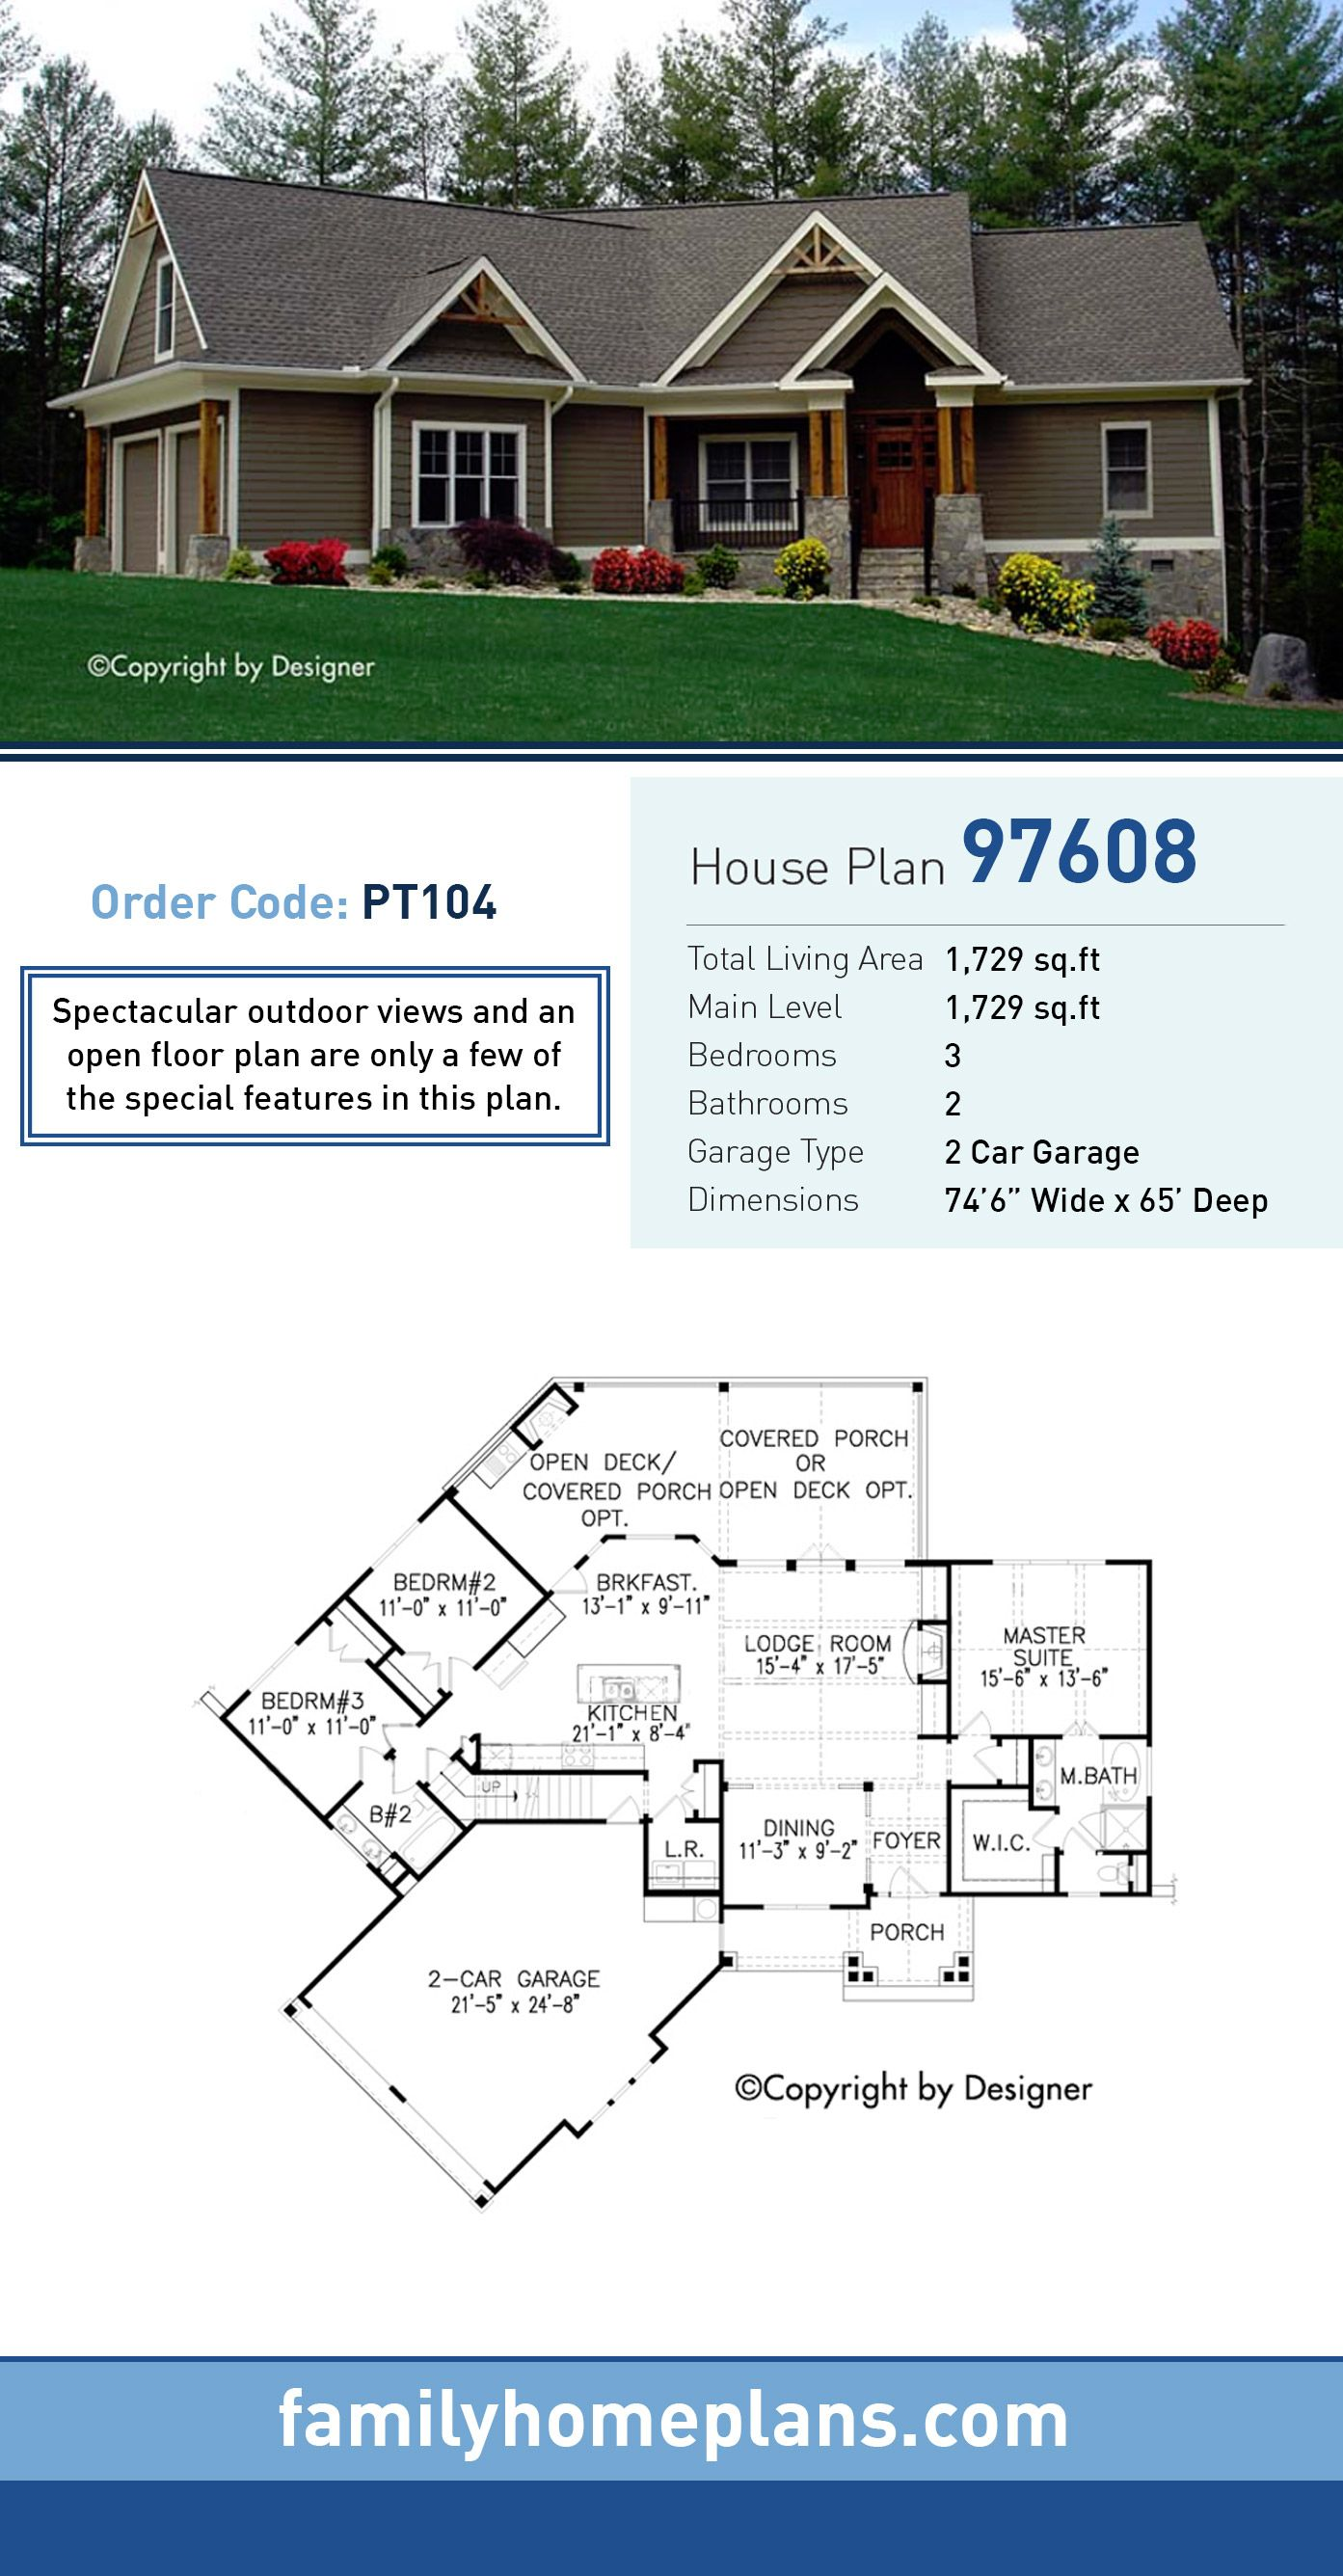 simple 3 bedroom house plans%0A Craftsman House Plan         Total Living Area        SQ FT    bedrooms and